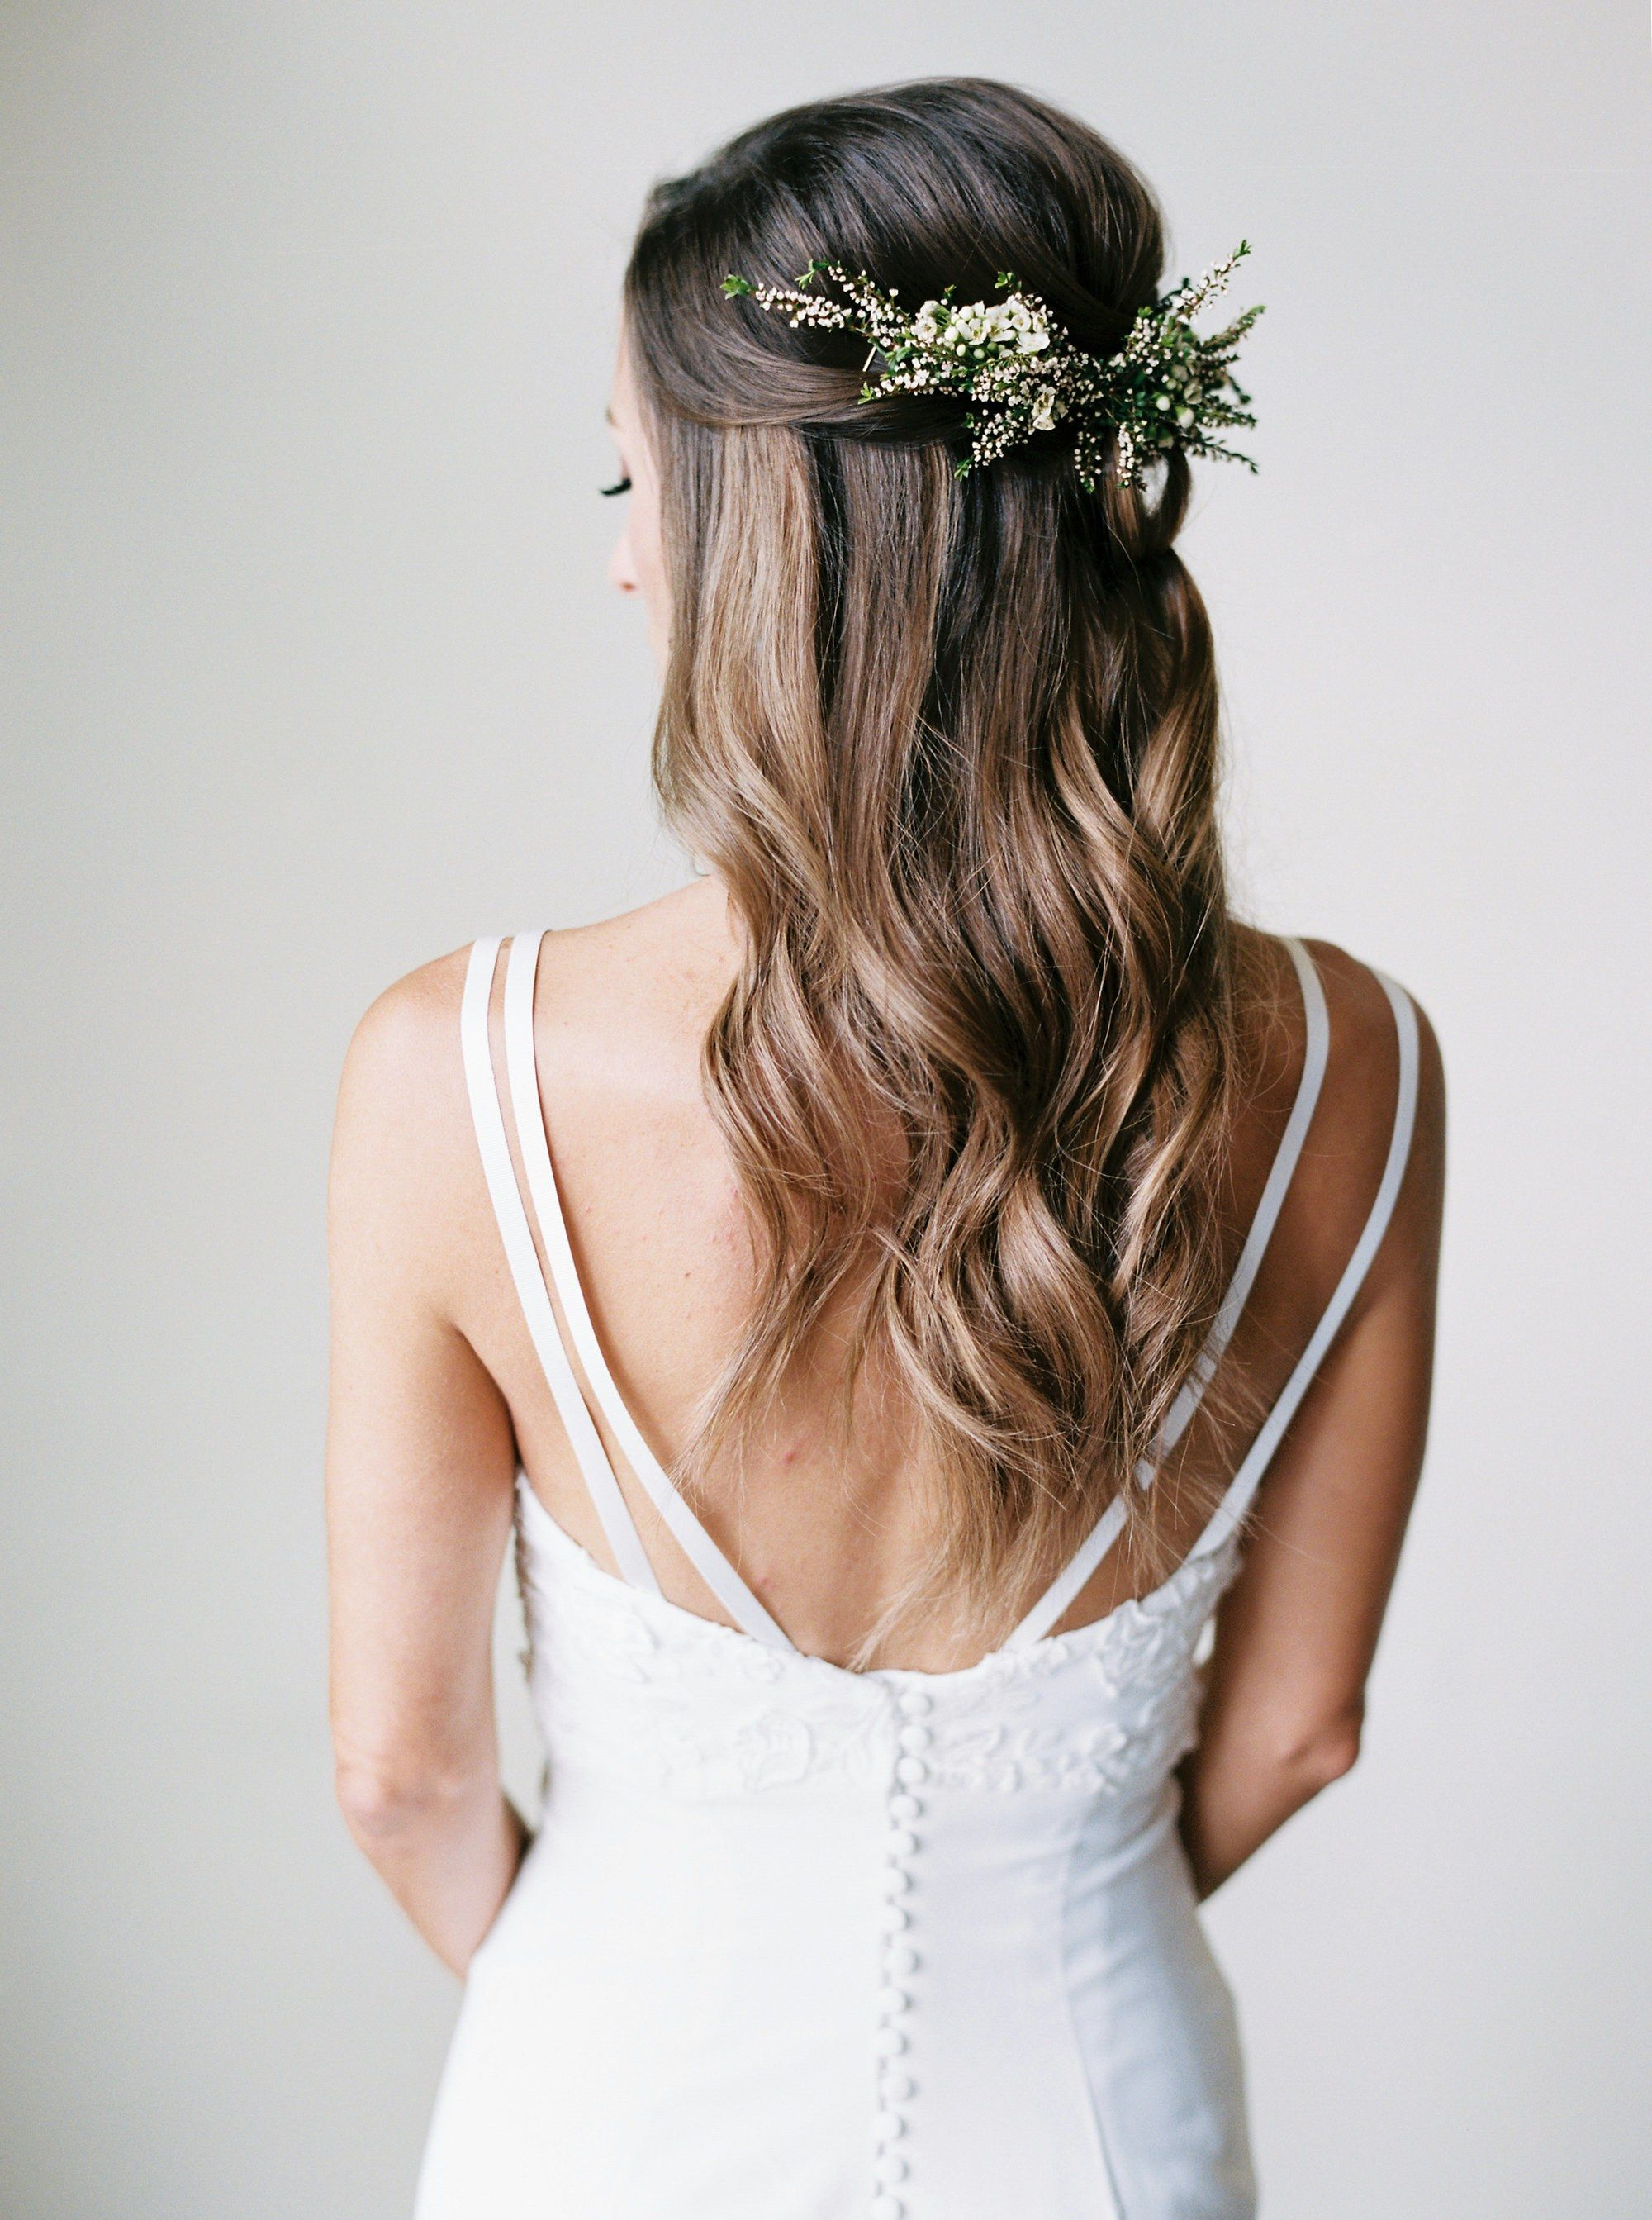 tips for acing your wedding hair trial hair ideas in